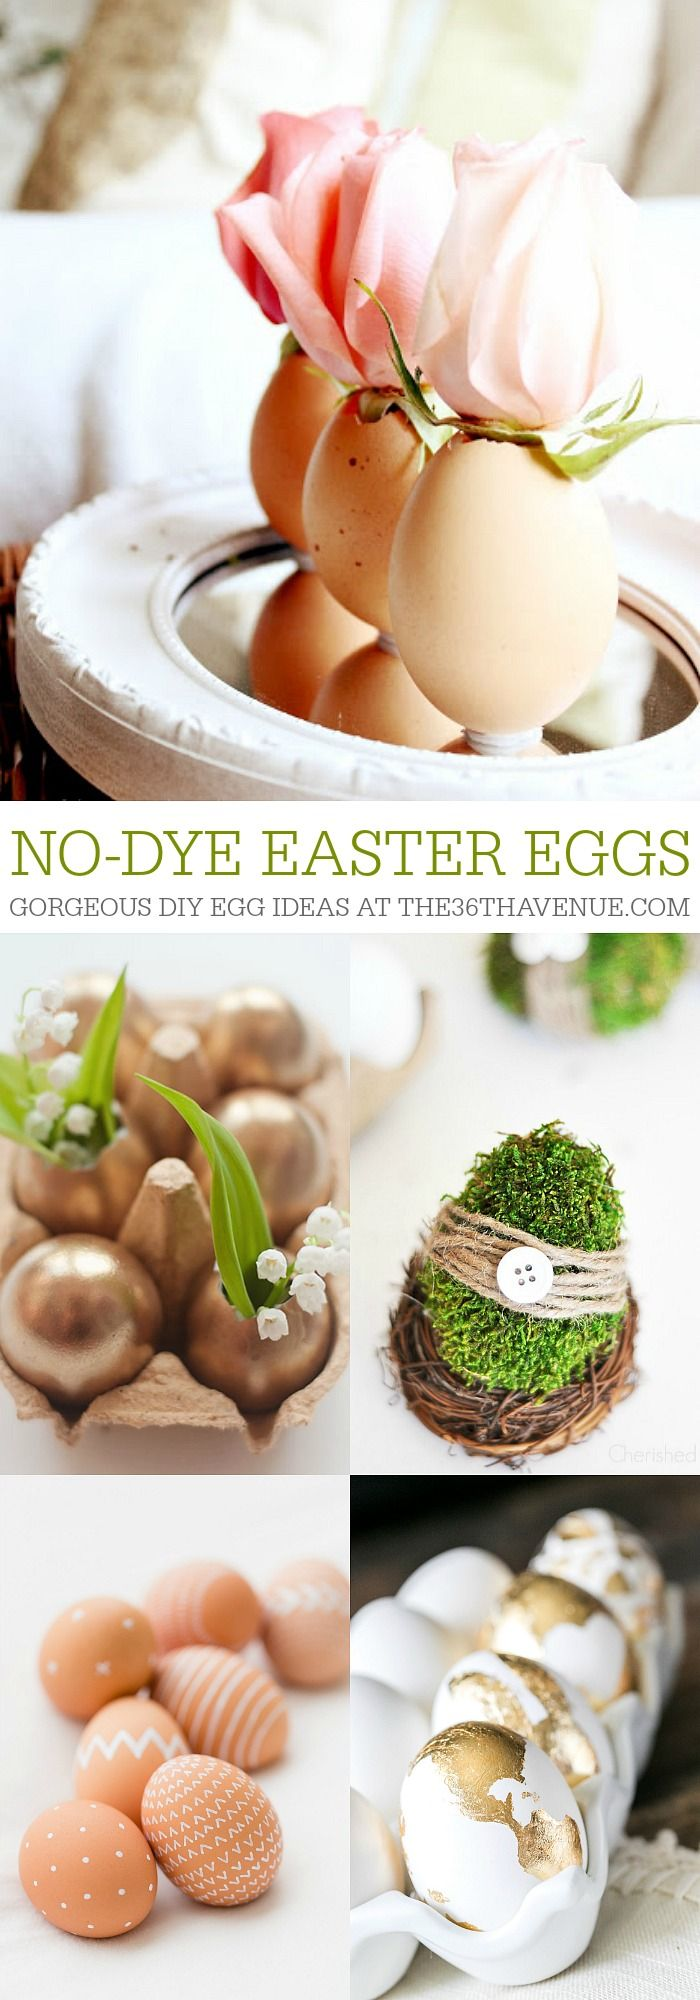 Easter - No Dye Easter Egg Tutorials at the36thavenue.com ...Adorable ideas! Pin it now and make them later! @THE36THAVENUE.COM